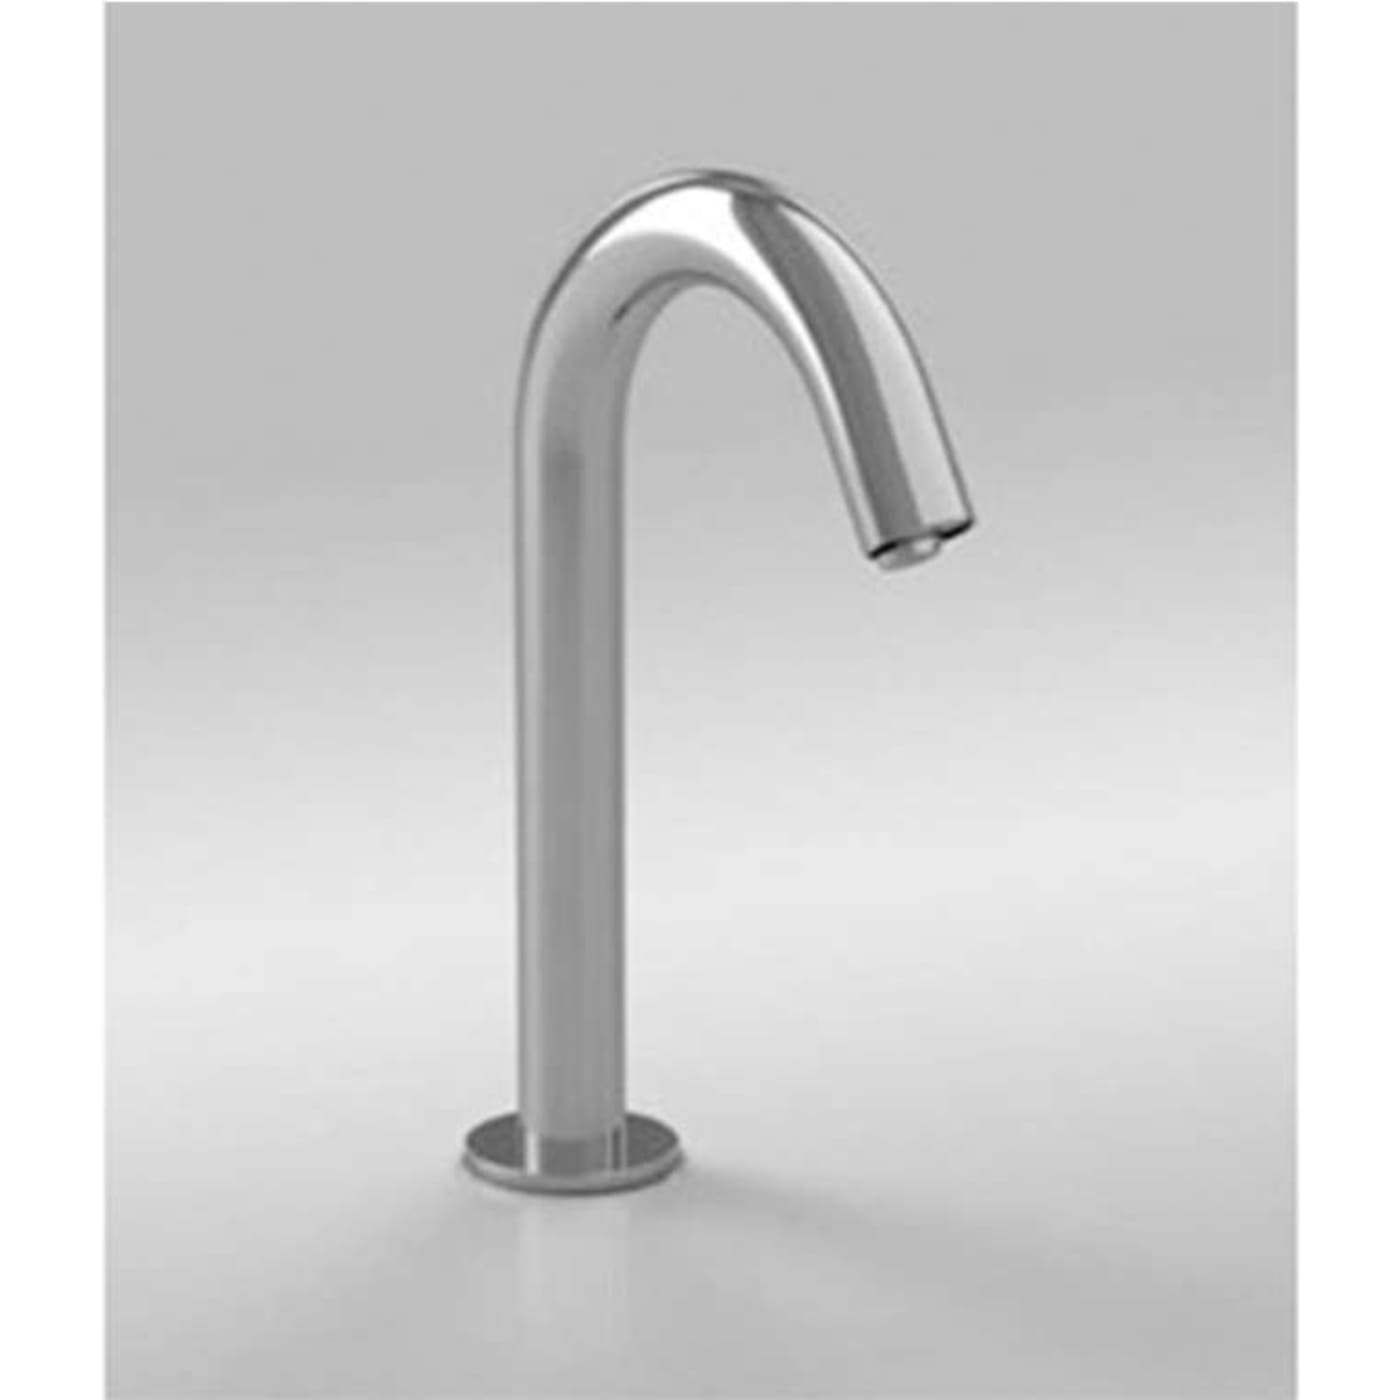 Toto Helix Single Hole Bathroom Faucet TELS125#CP Polished Chrome ...